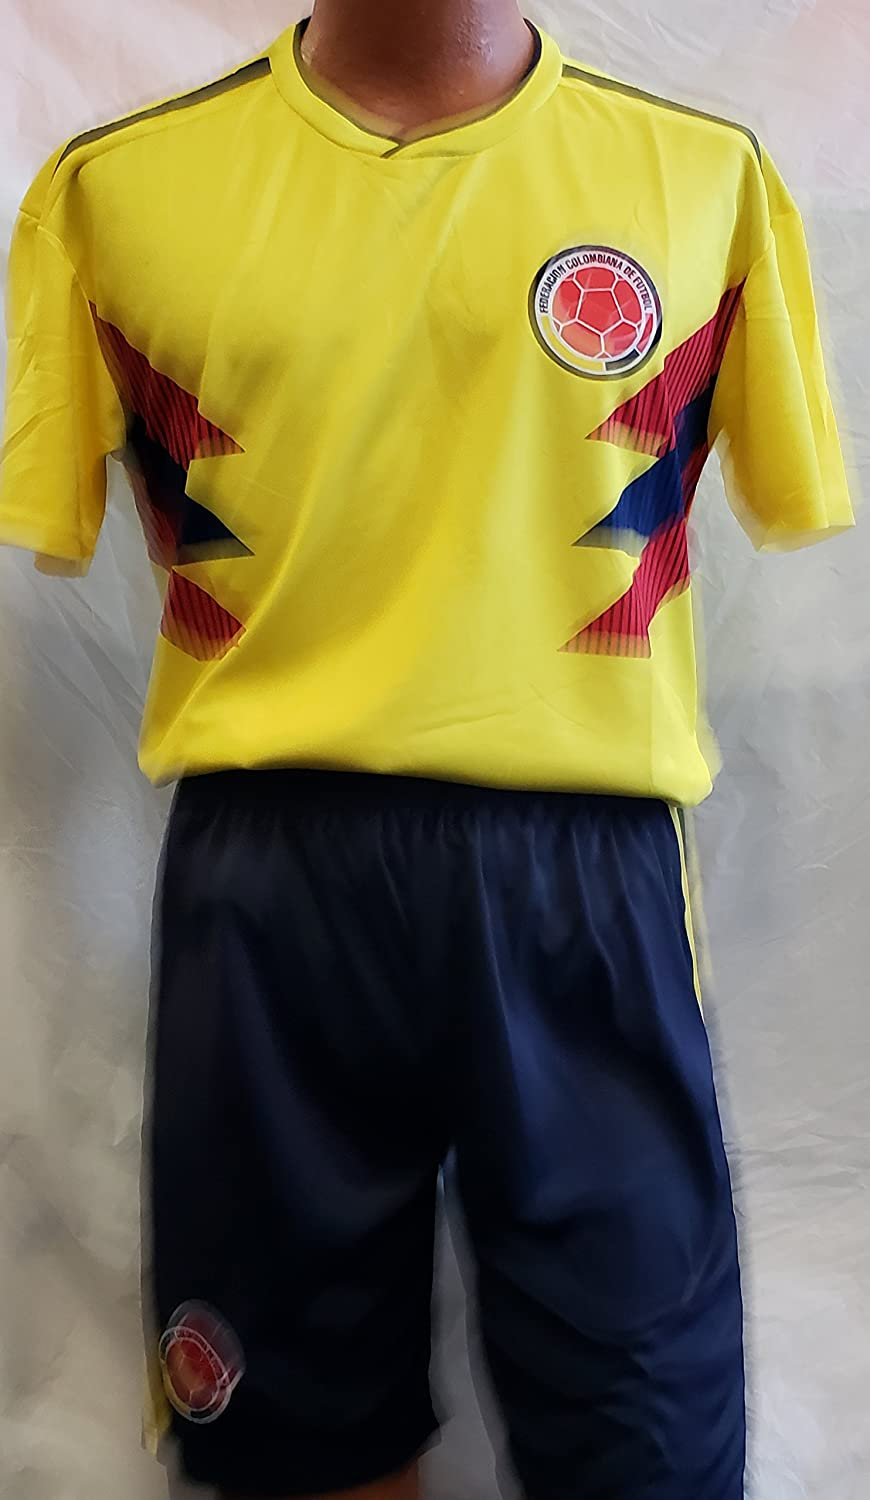 新しい。Colombia National Team 2018 Short and Jersey 2 pcサイズSmall B07CW2PHBZ